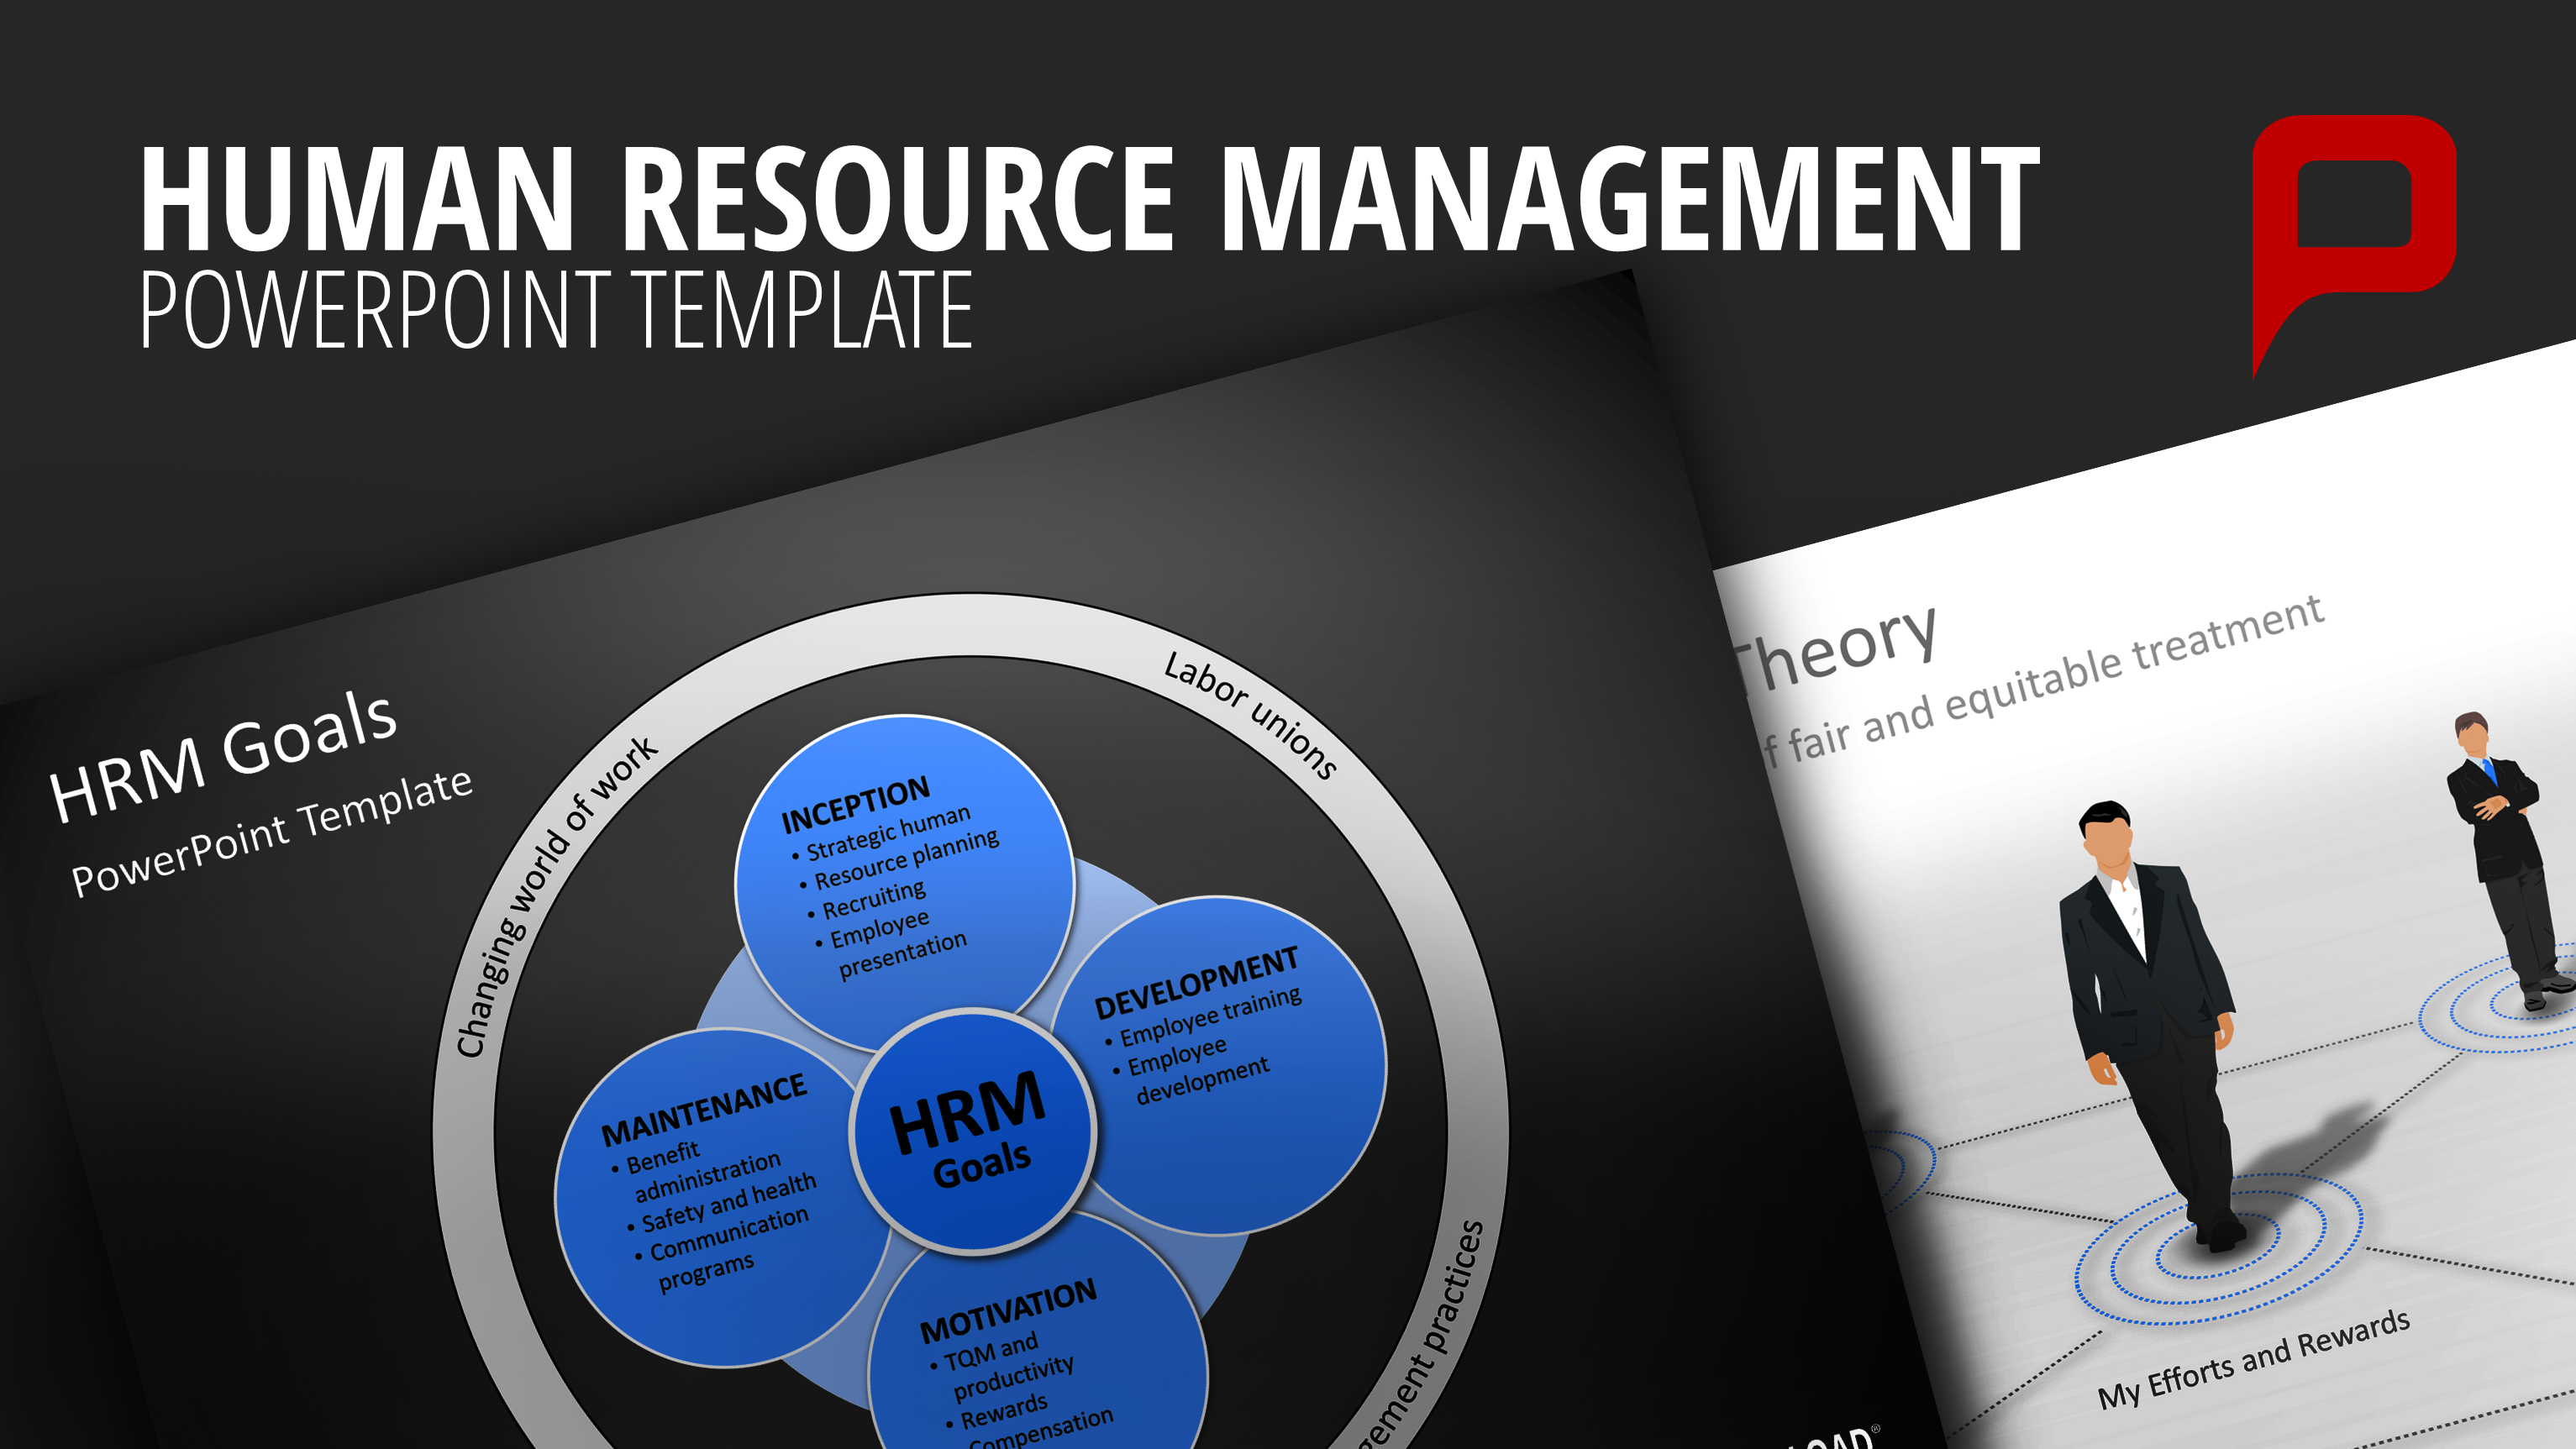 human capital planning template - effective human resource management with powerpoint